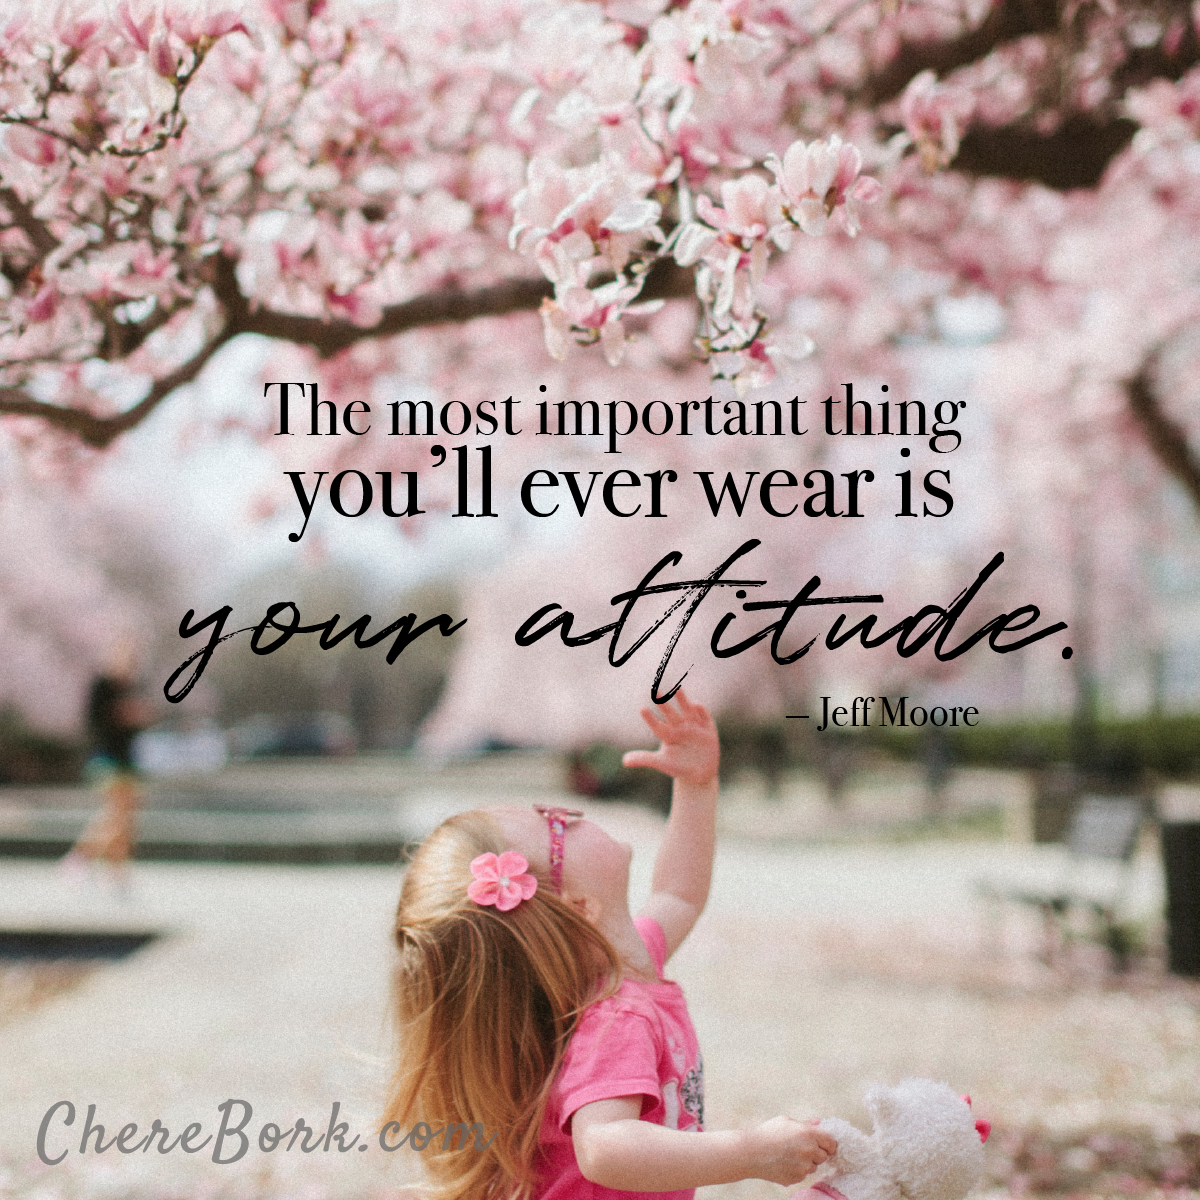 The most important thing you'll ever wear is your attitude. -Jeff Moore